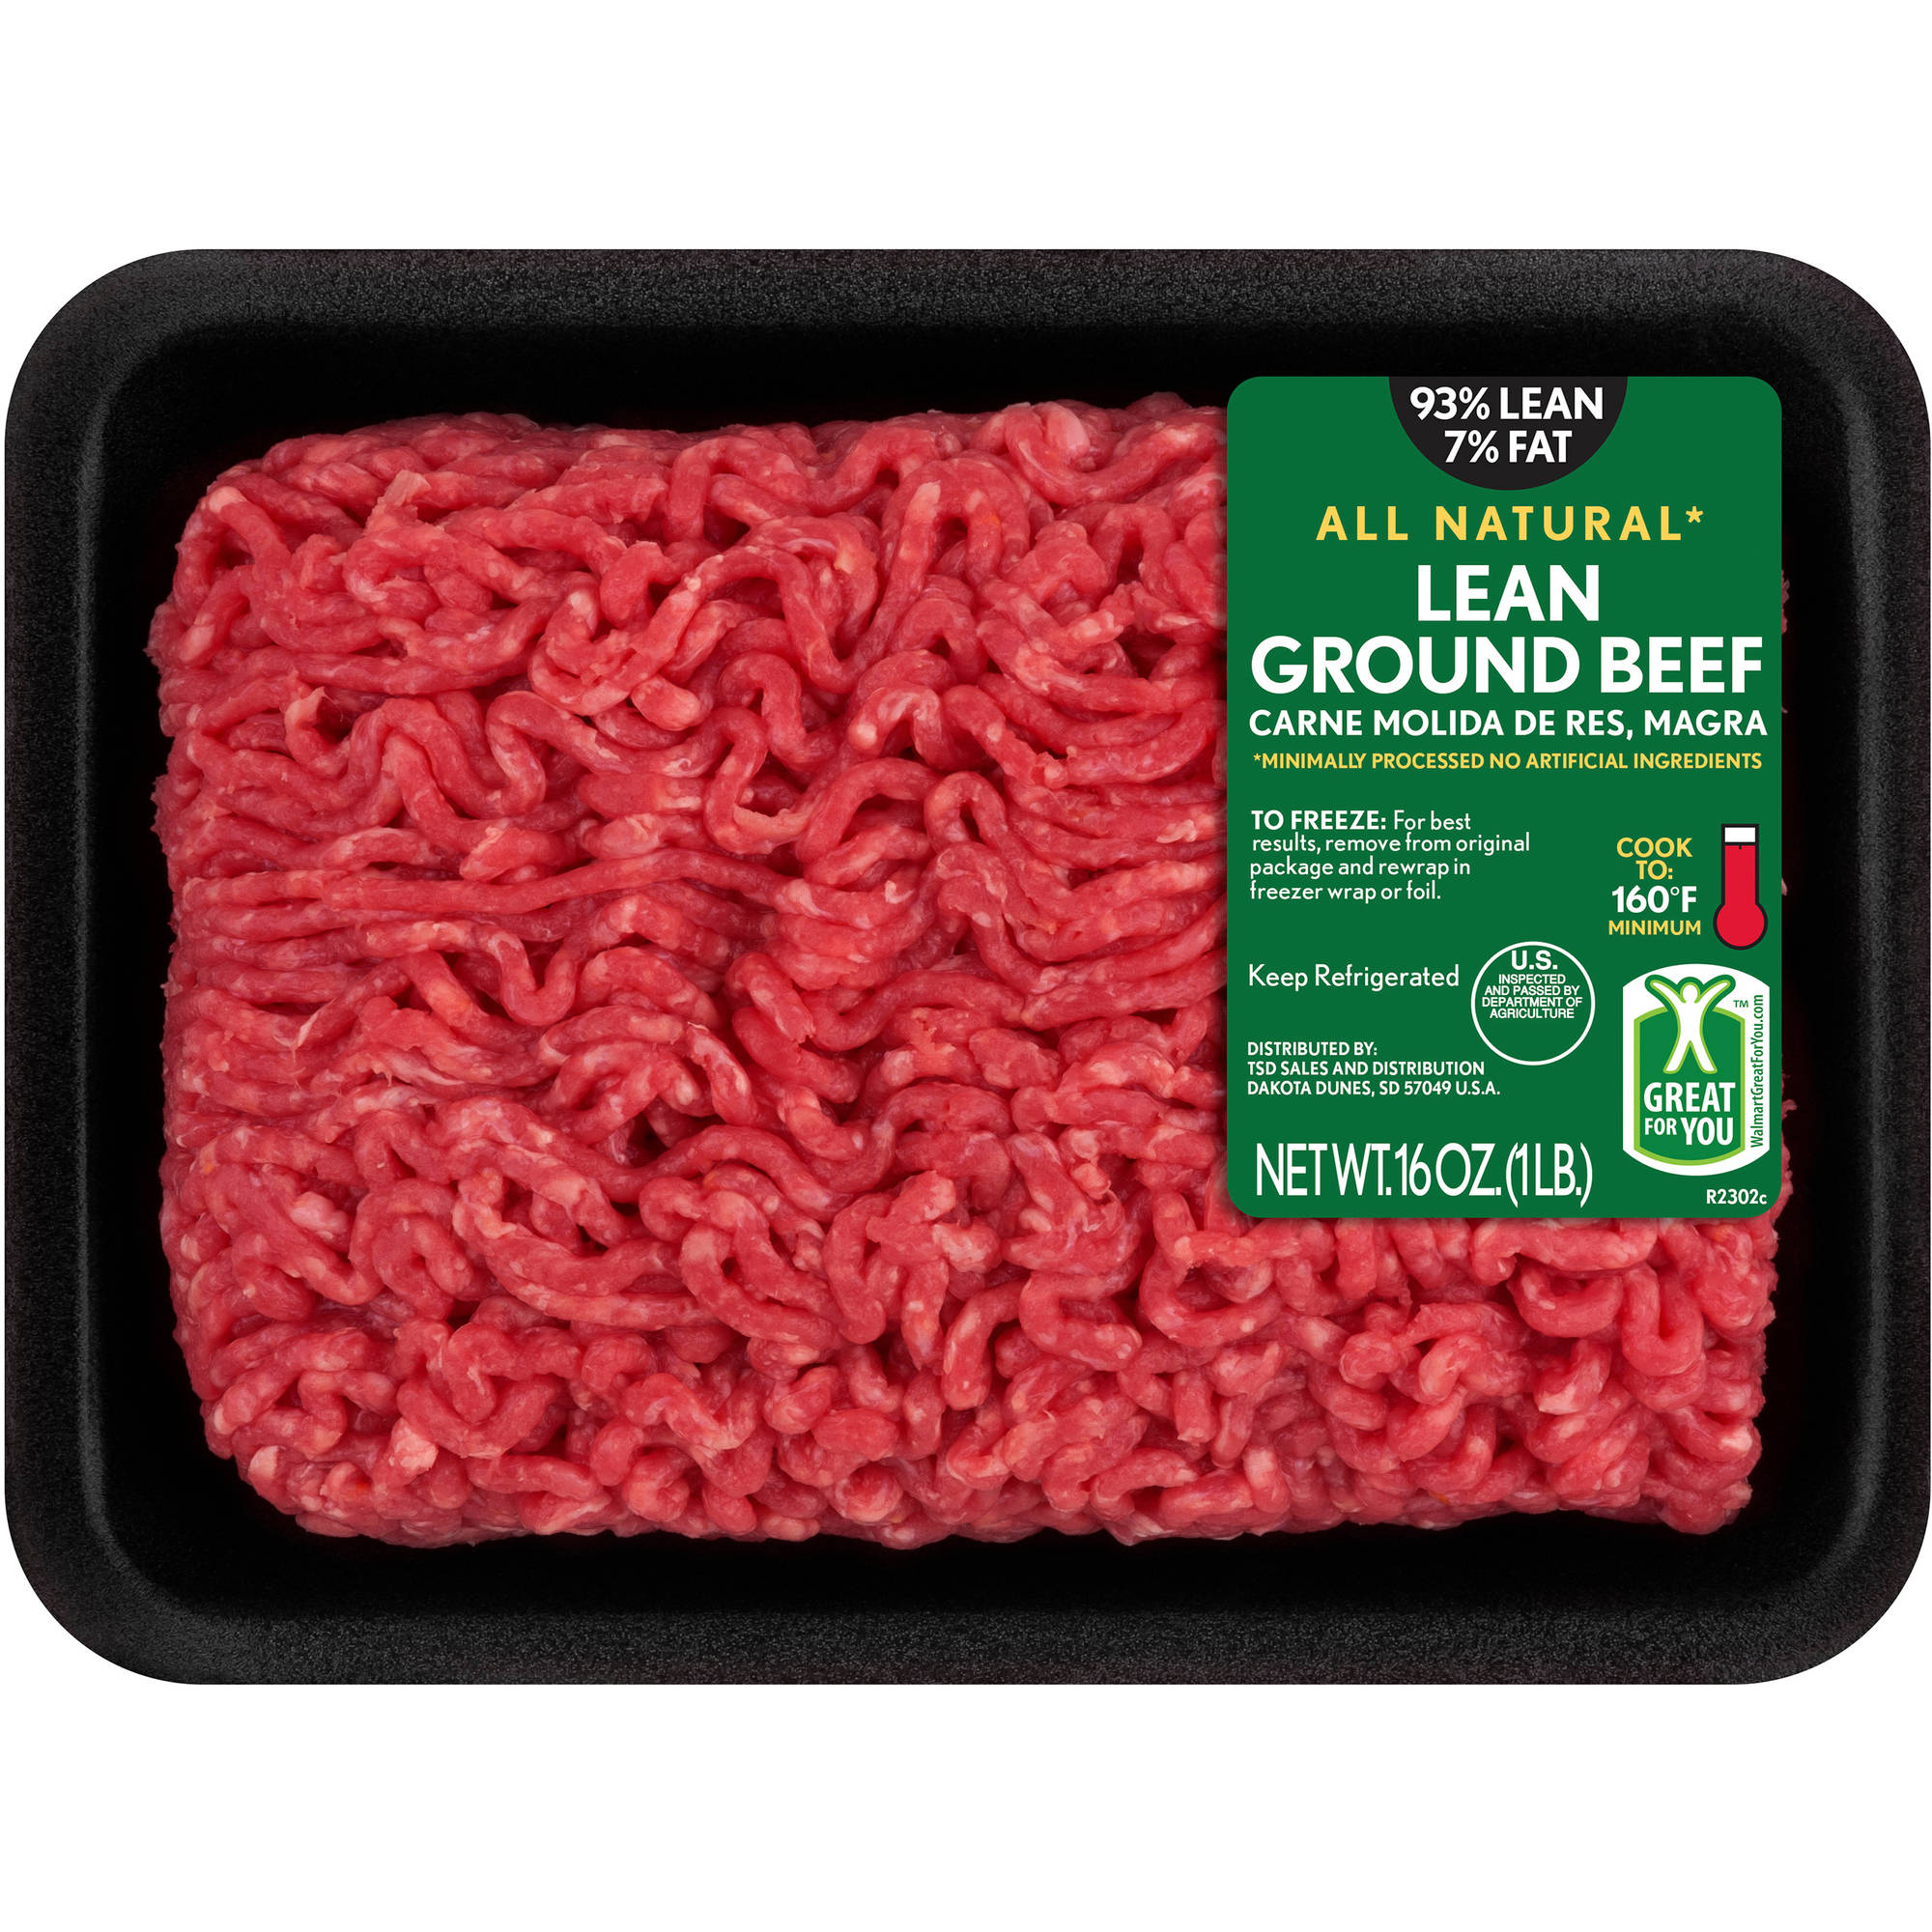 93% Lean/7% Fat Lean Ground Beef, 1 lb